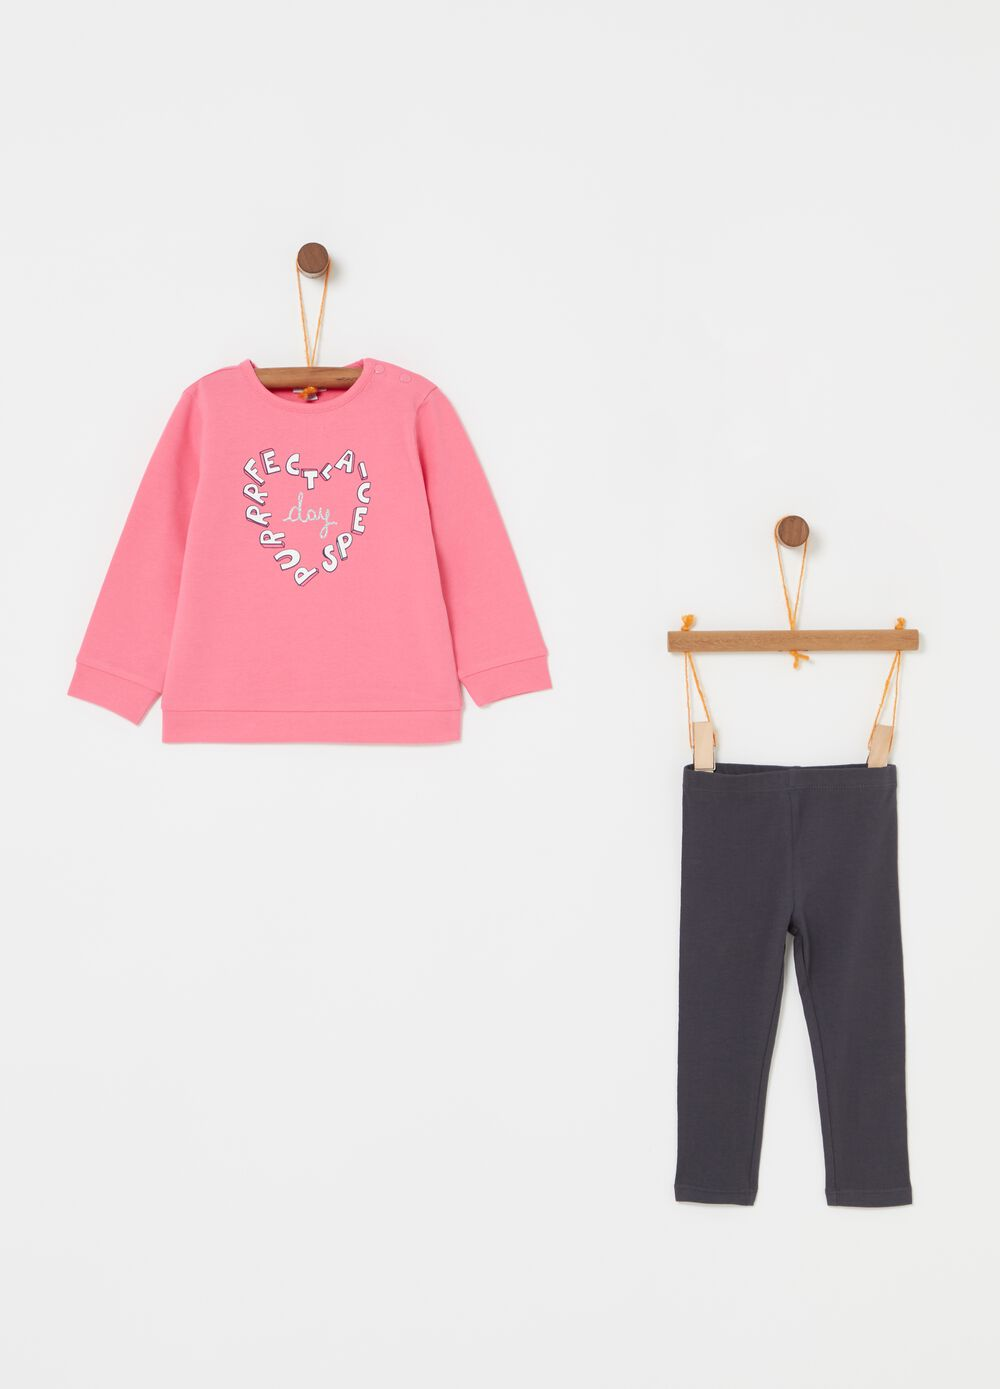 Jogging set with heart print